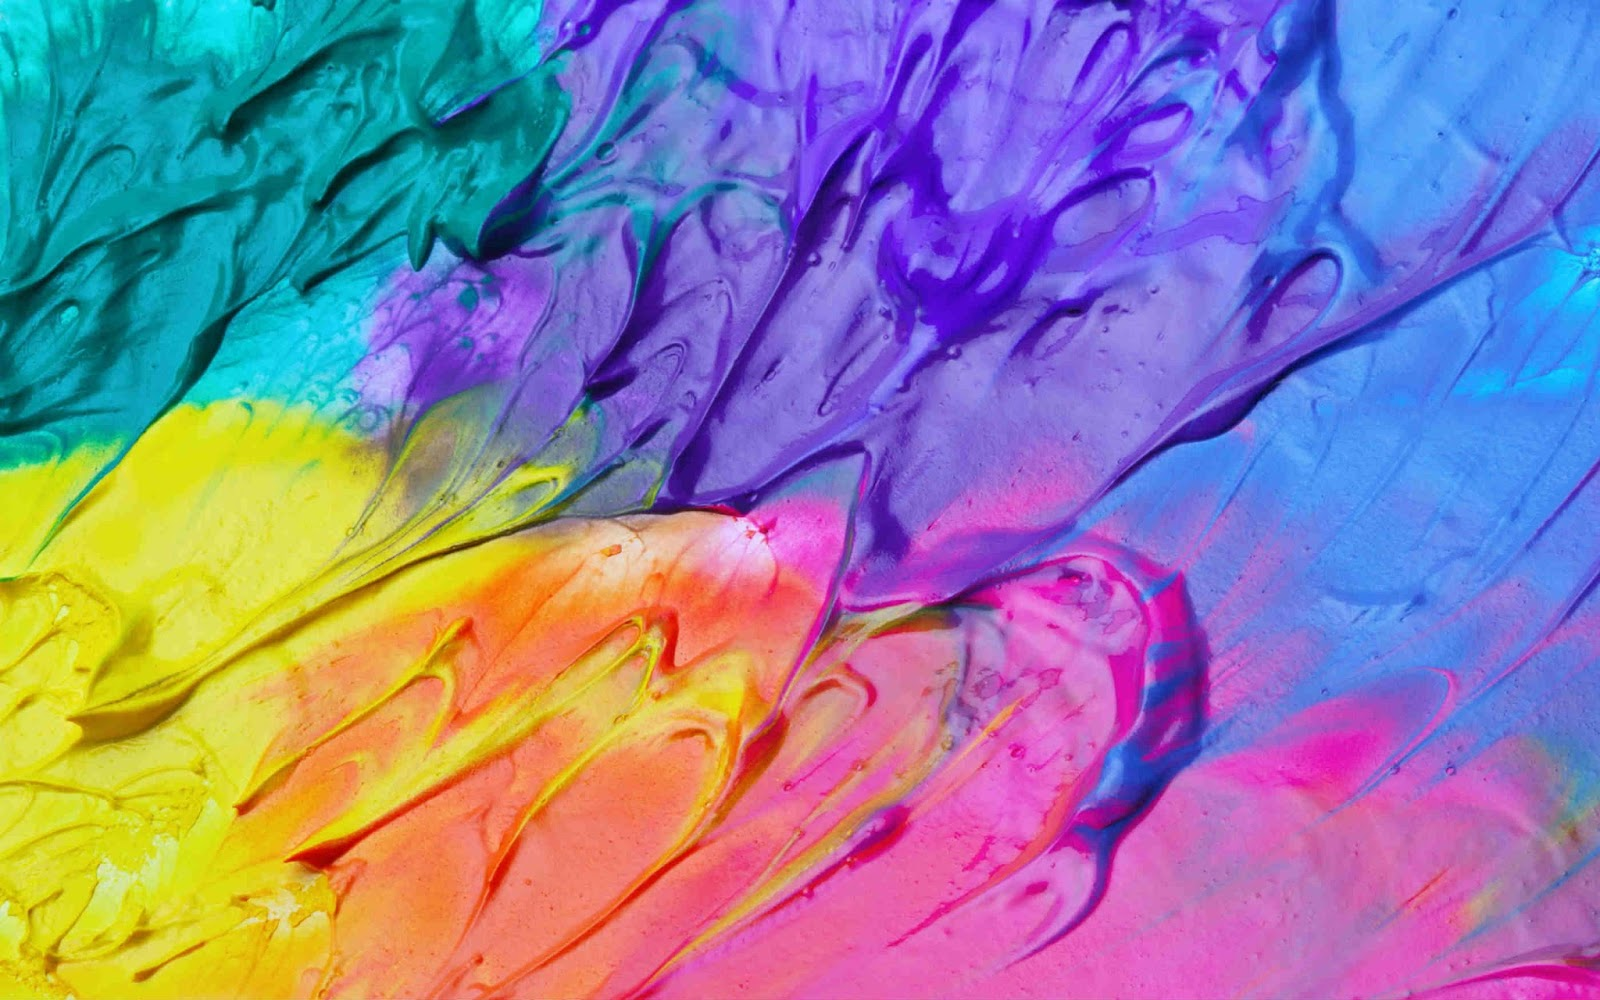 Mixed Oil Paint Wallpaper Hd O Wallpaper Picture Photo